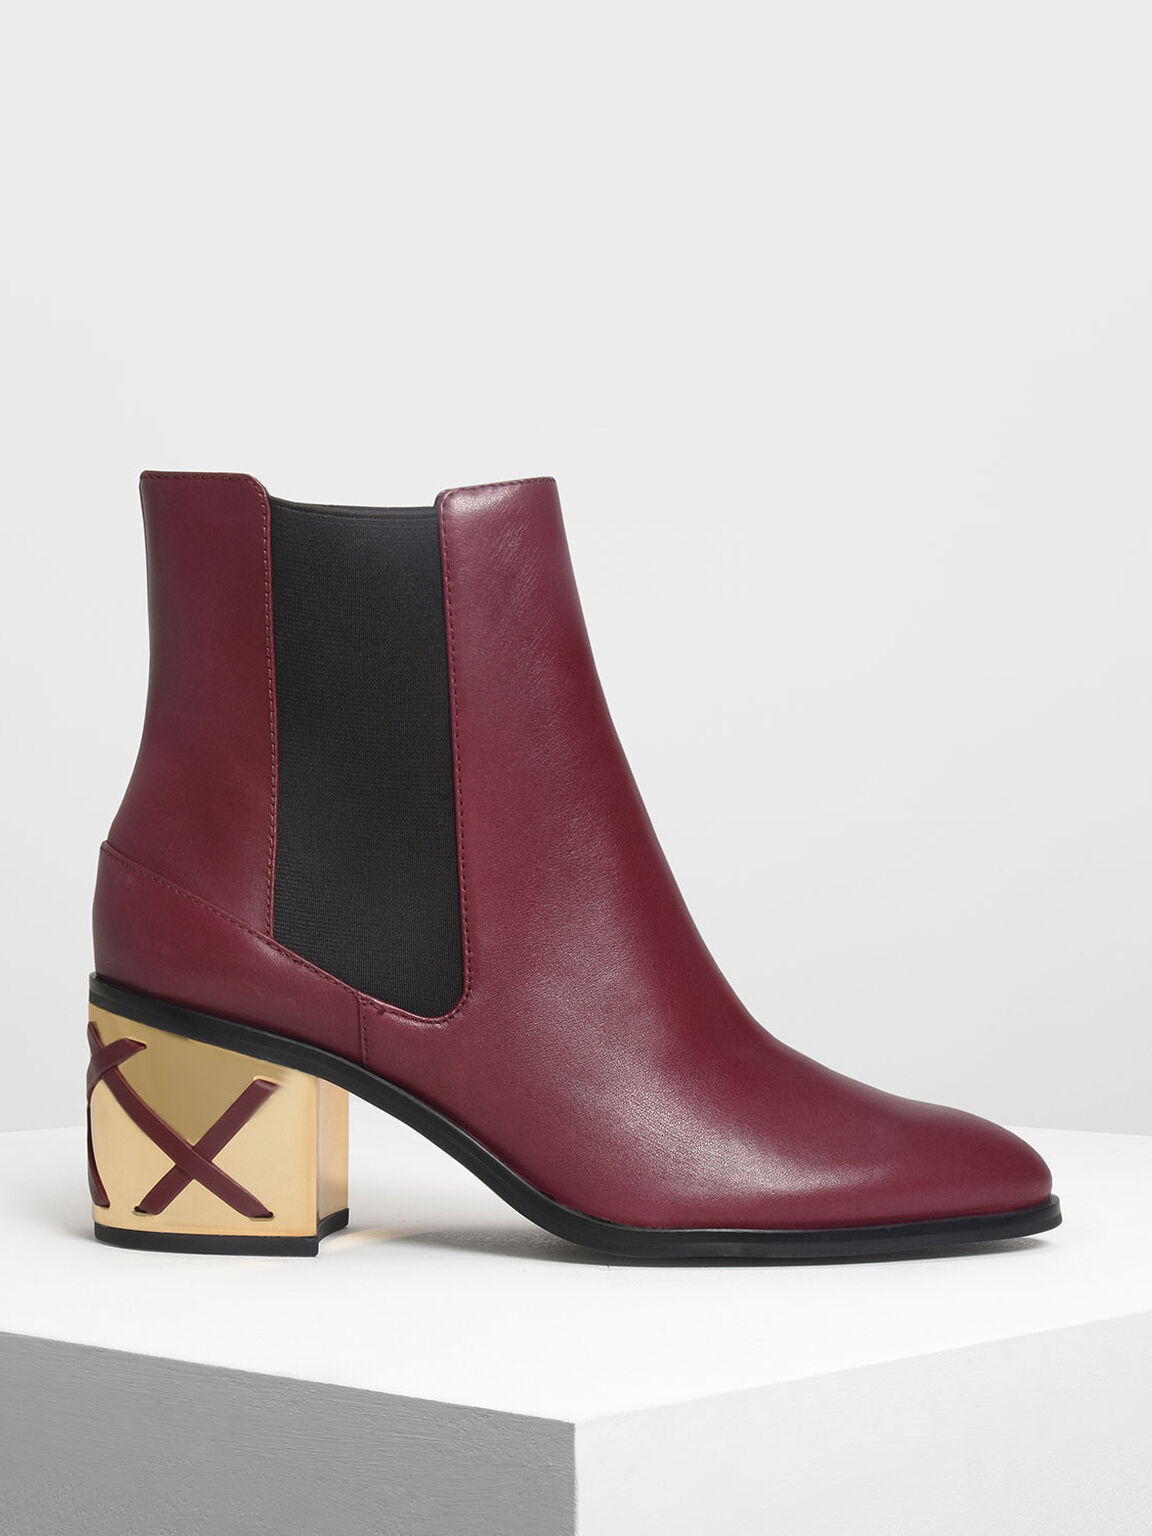 Weave Detail Chrome Heel Leather Chelsea Boots, Burgundy, hi-res